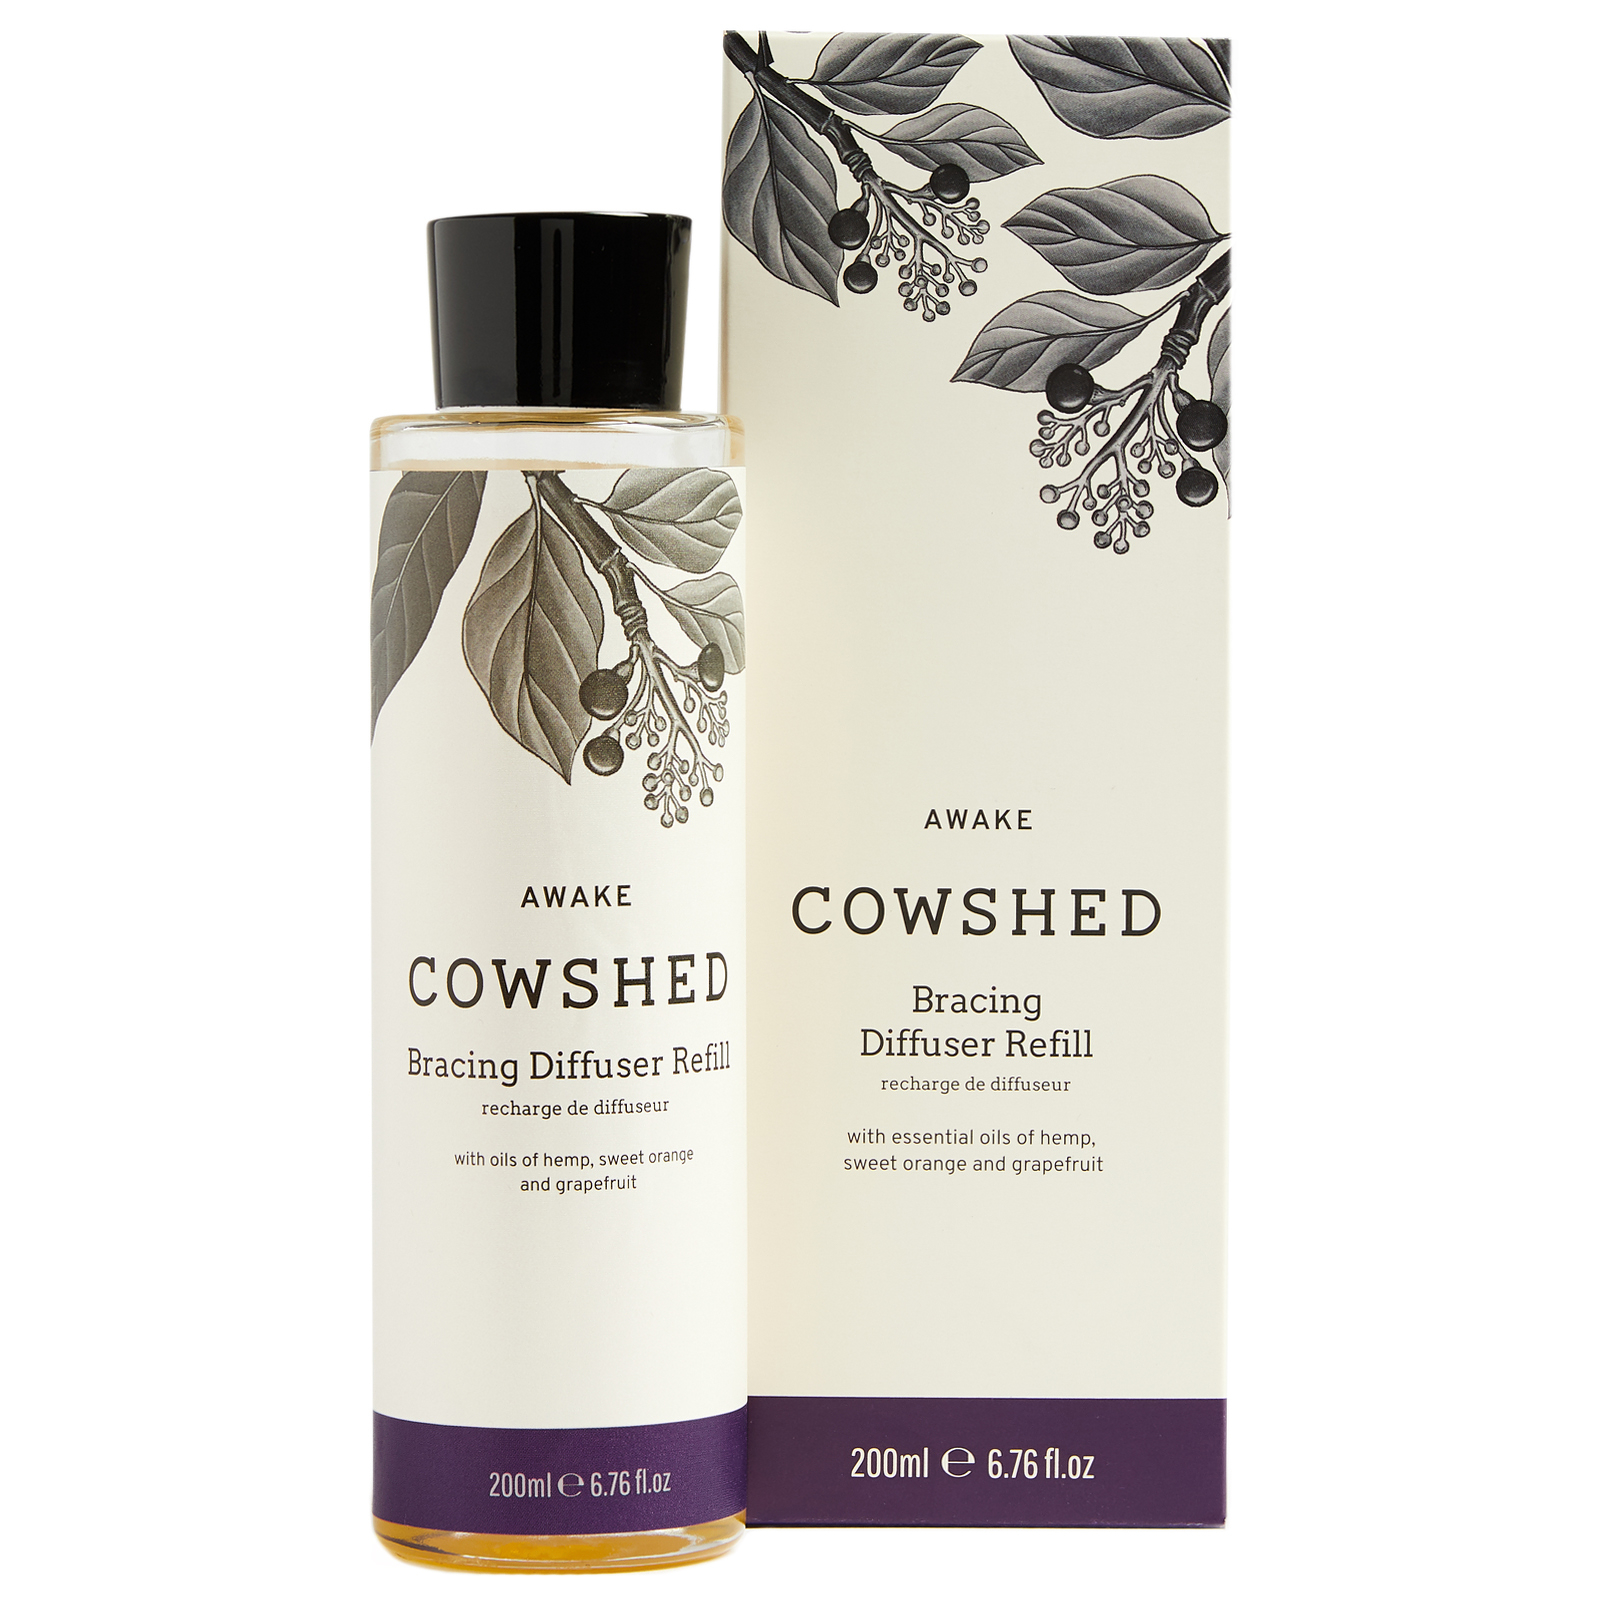 Cowshed At Home Awake Diffuser Refill 200ml